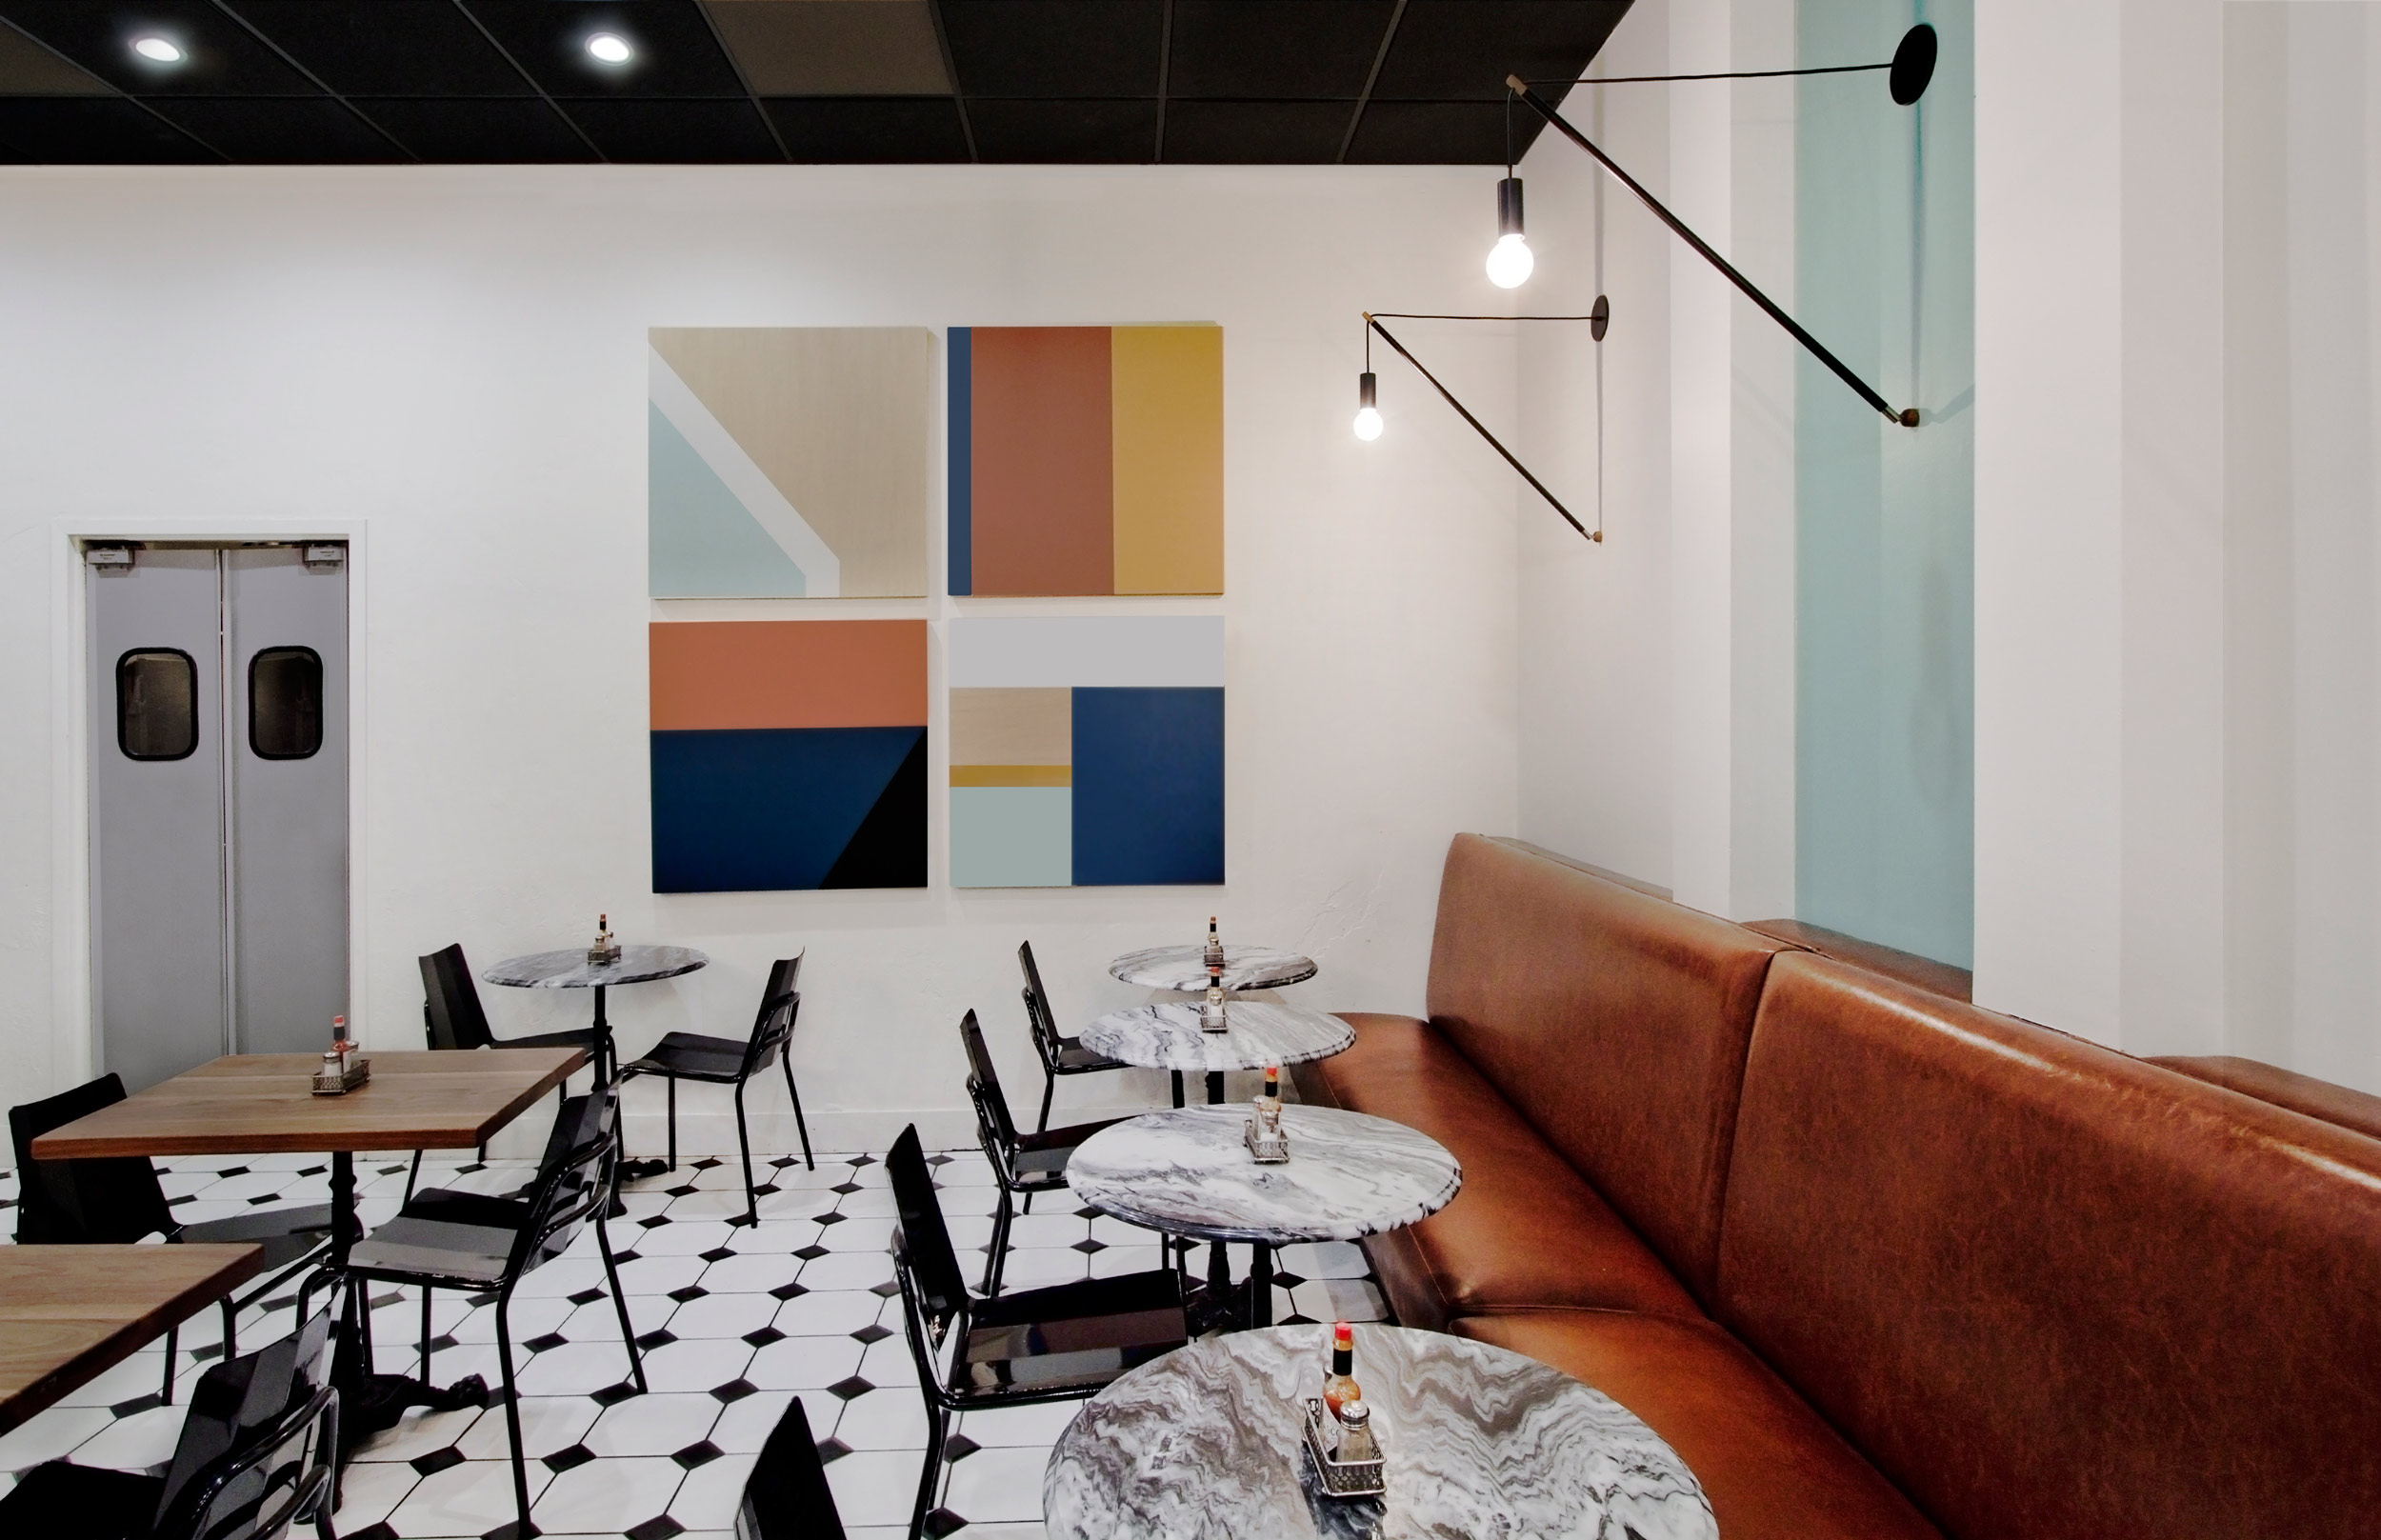 Photograph-of-Cafe-Banquette.jpg